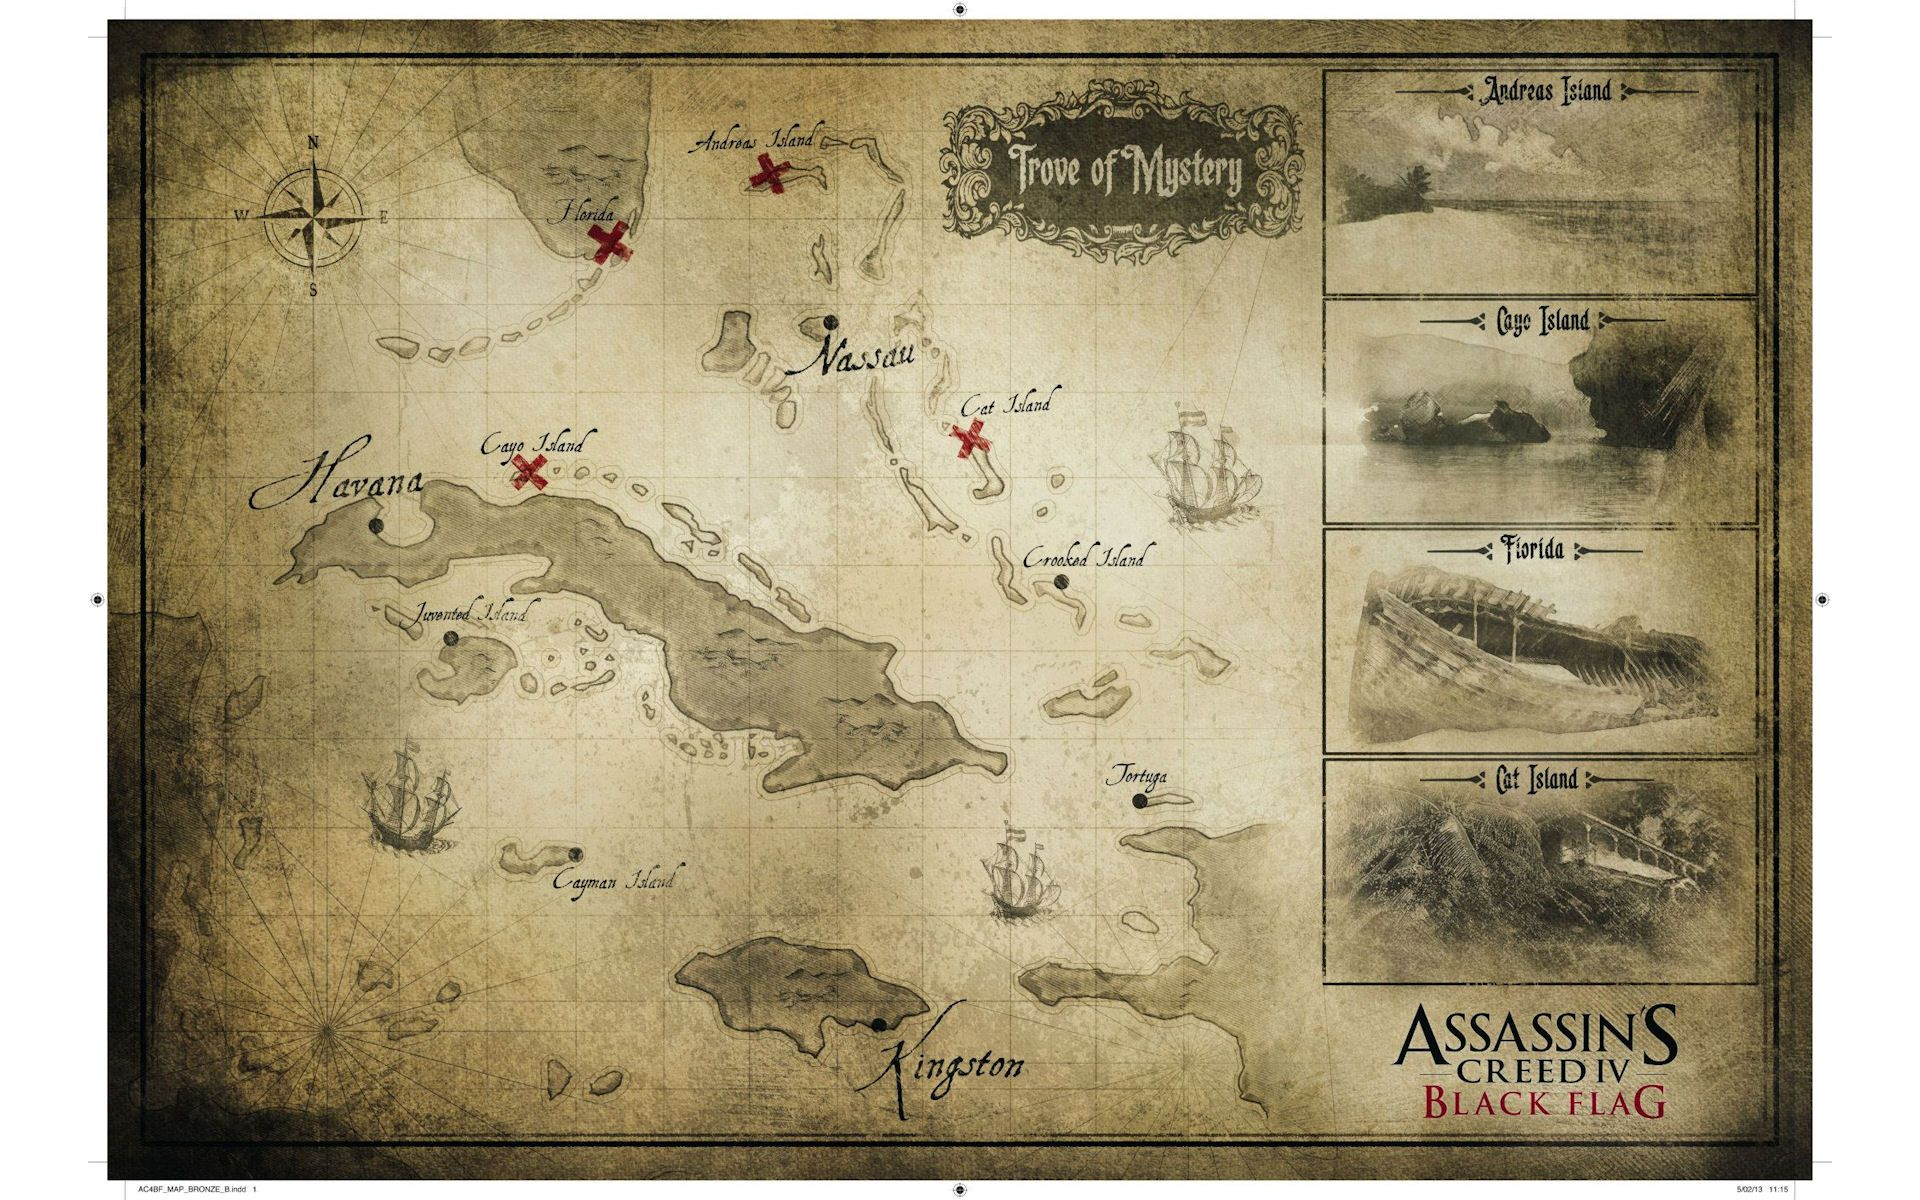 Ac4 Black Flag World Map Assassins Creed Black Flag Assassins Creed 4 Black Flag